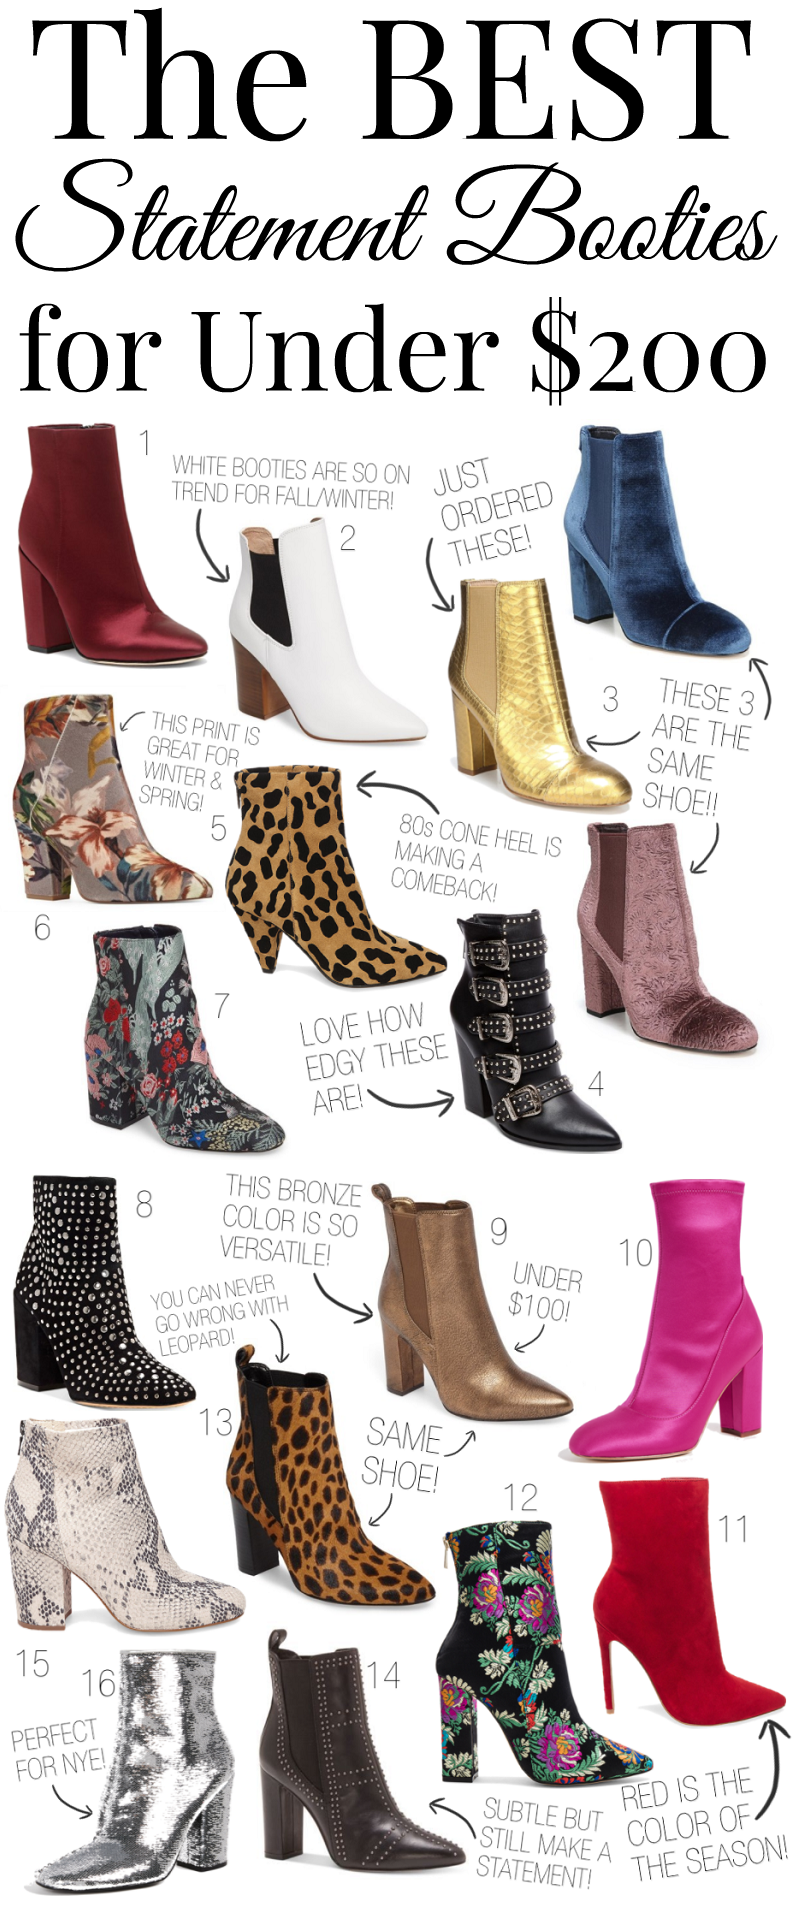 The BEST Statement Booties for Under $200